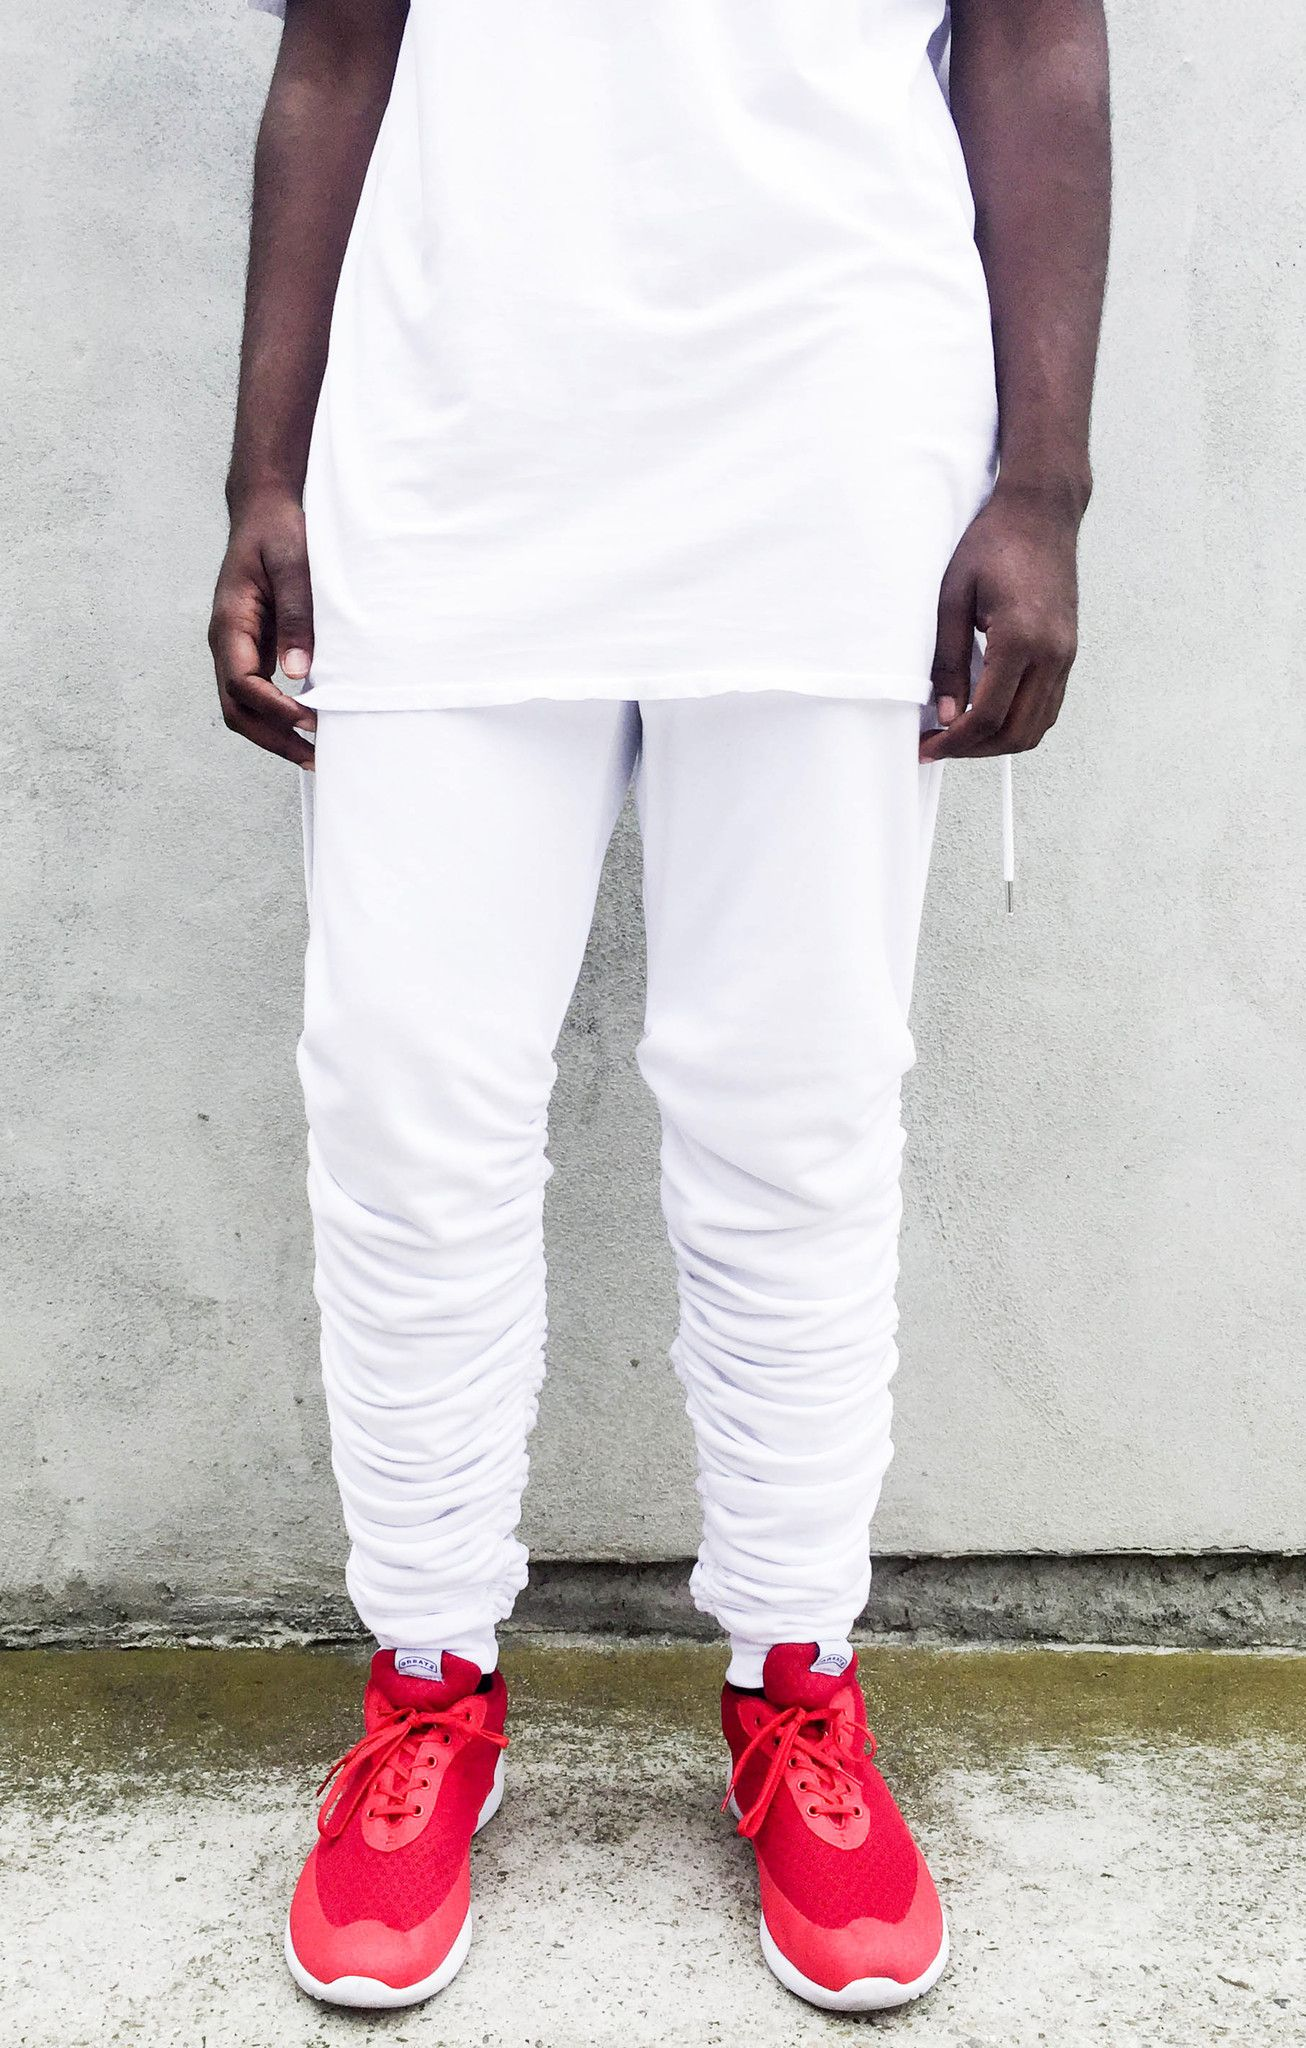 String Adjustable Sweatpants by Enfin Levé - BKBT Concept